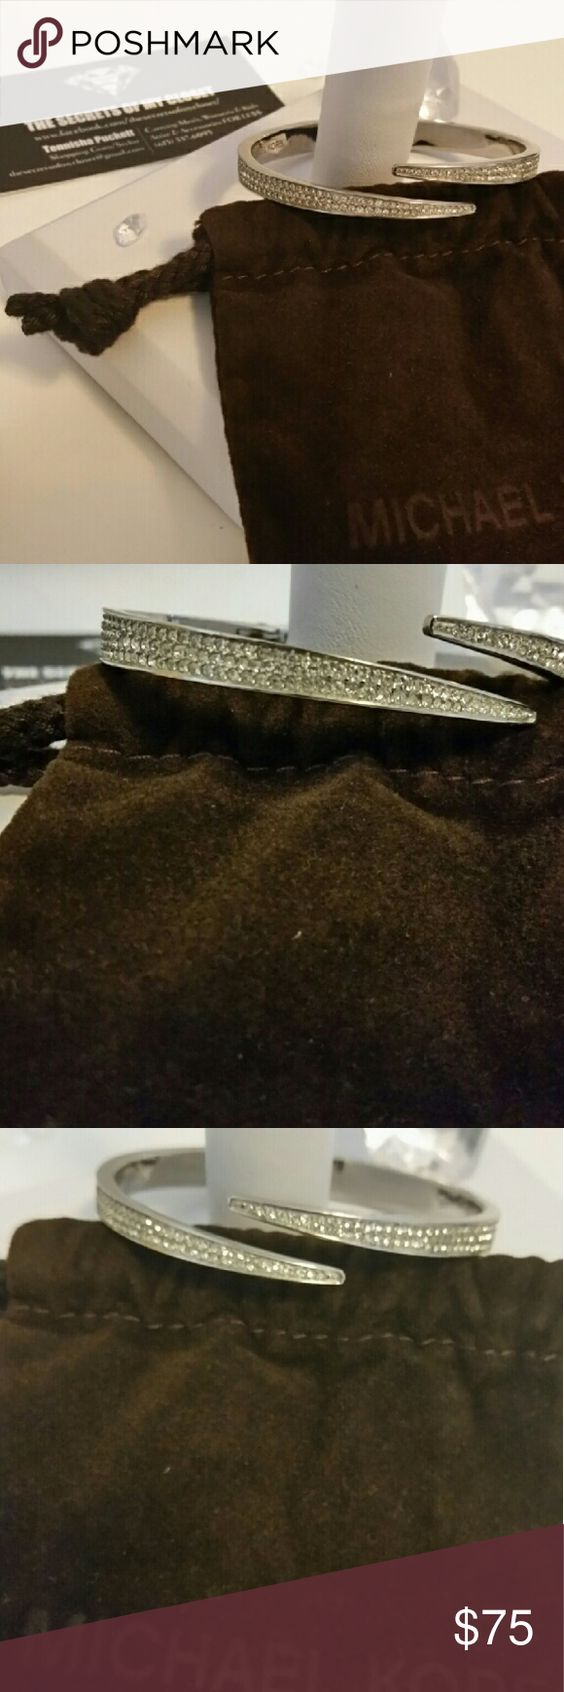 MICHAEL KORS CUFF BRACELET MICHAEL KORS  MATCHSTICK PAVE CRYSTAL  ONE HINGED SILVER CUFF BRACELET   RETAILS $145  BRAND NEW WITH TAG & BAG MICHAEL Michael Kors Jewelry Bracelets